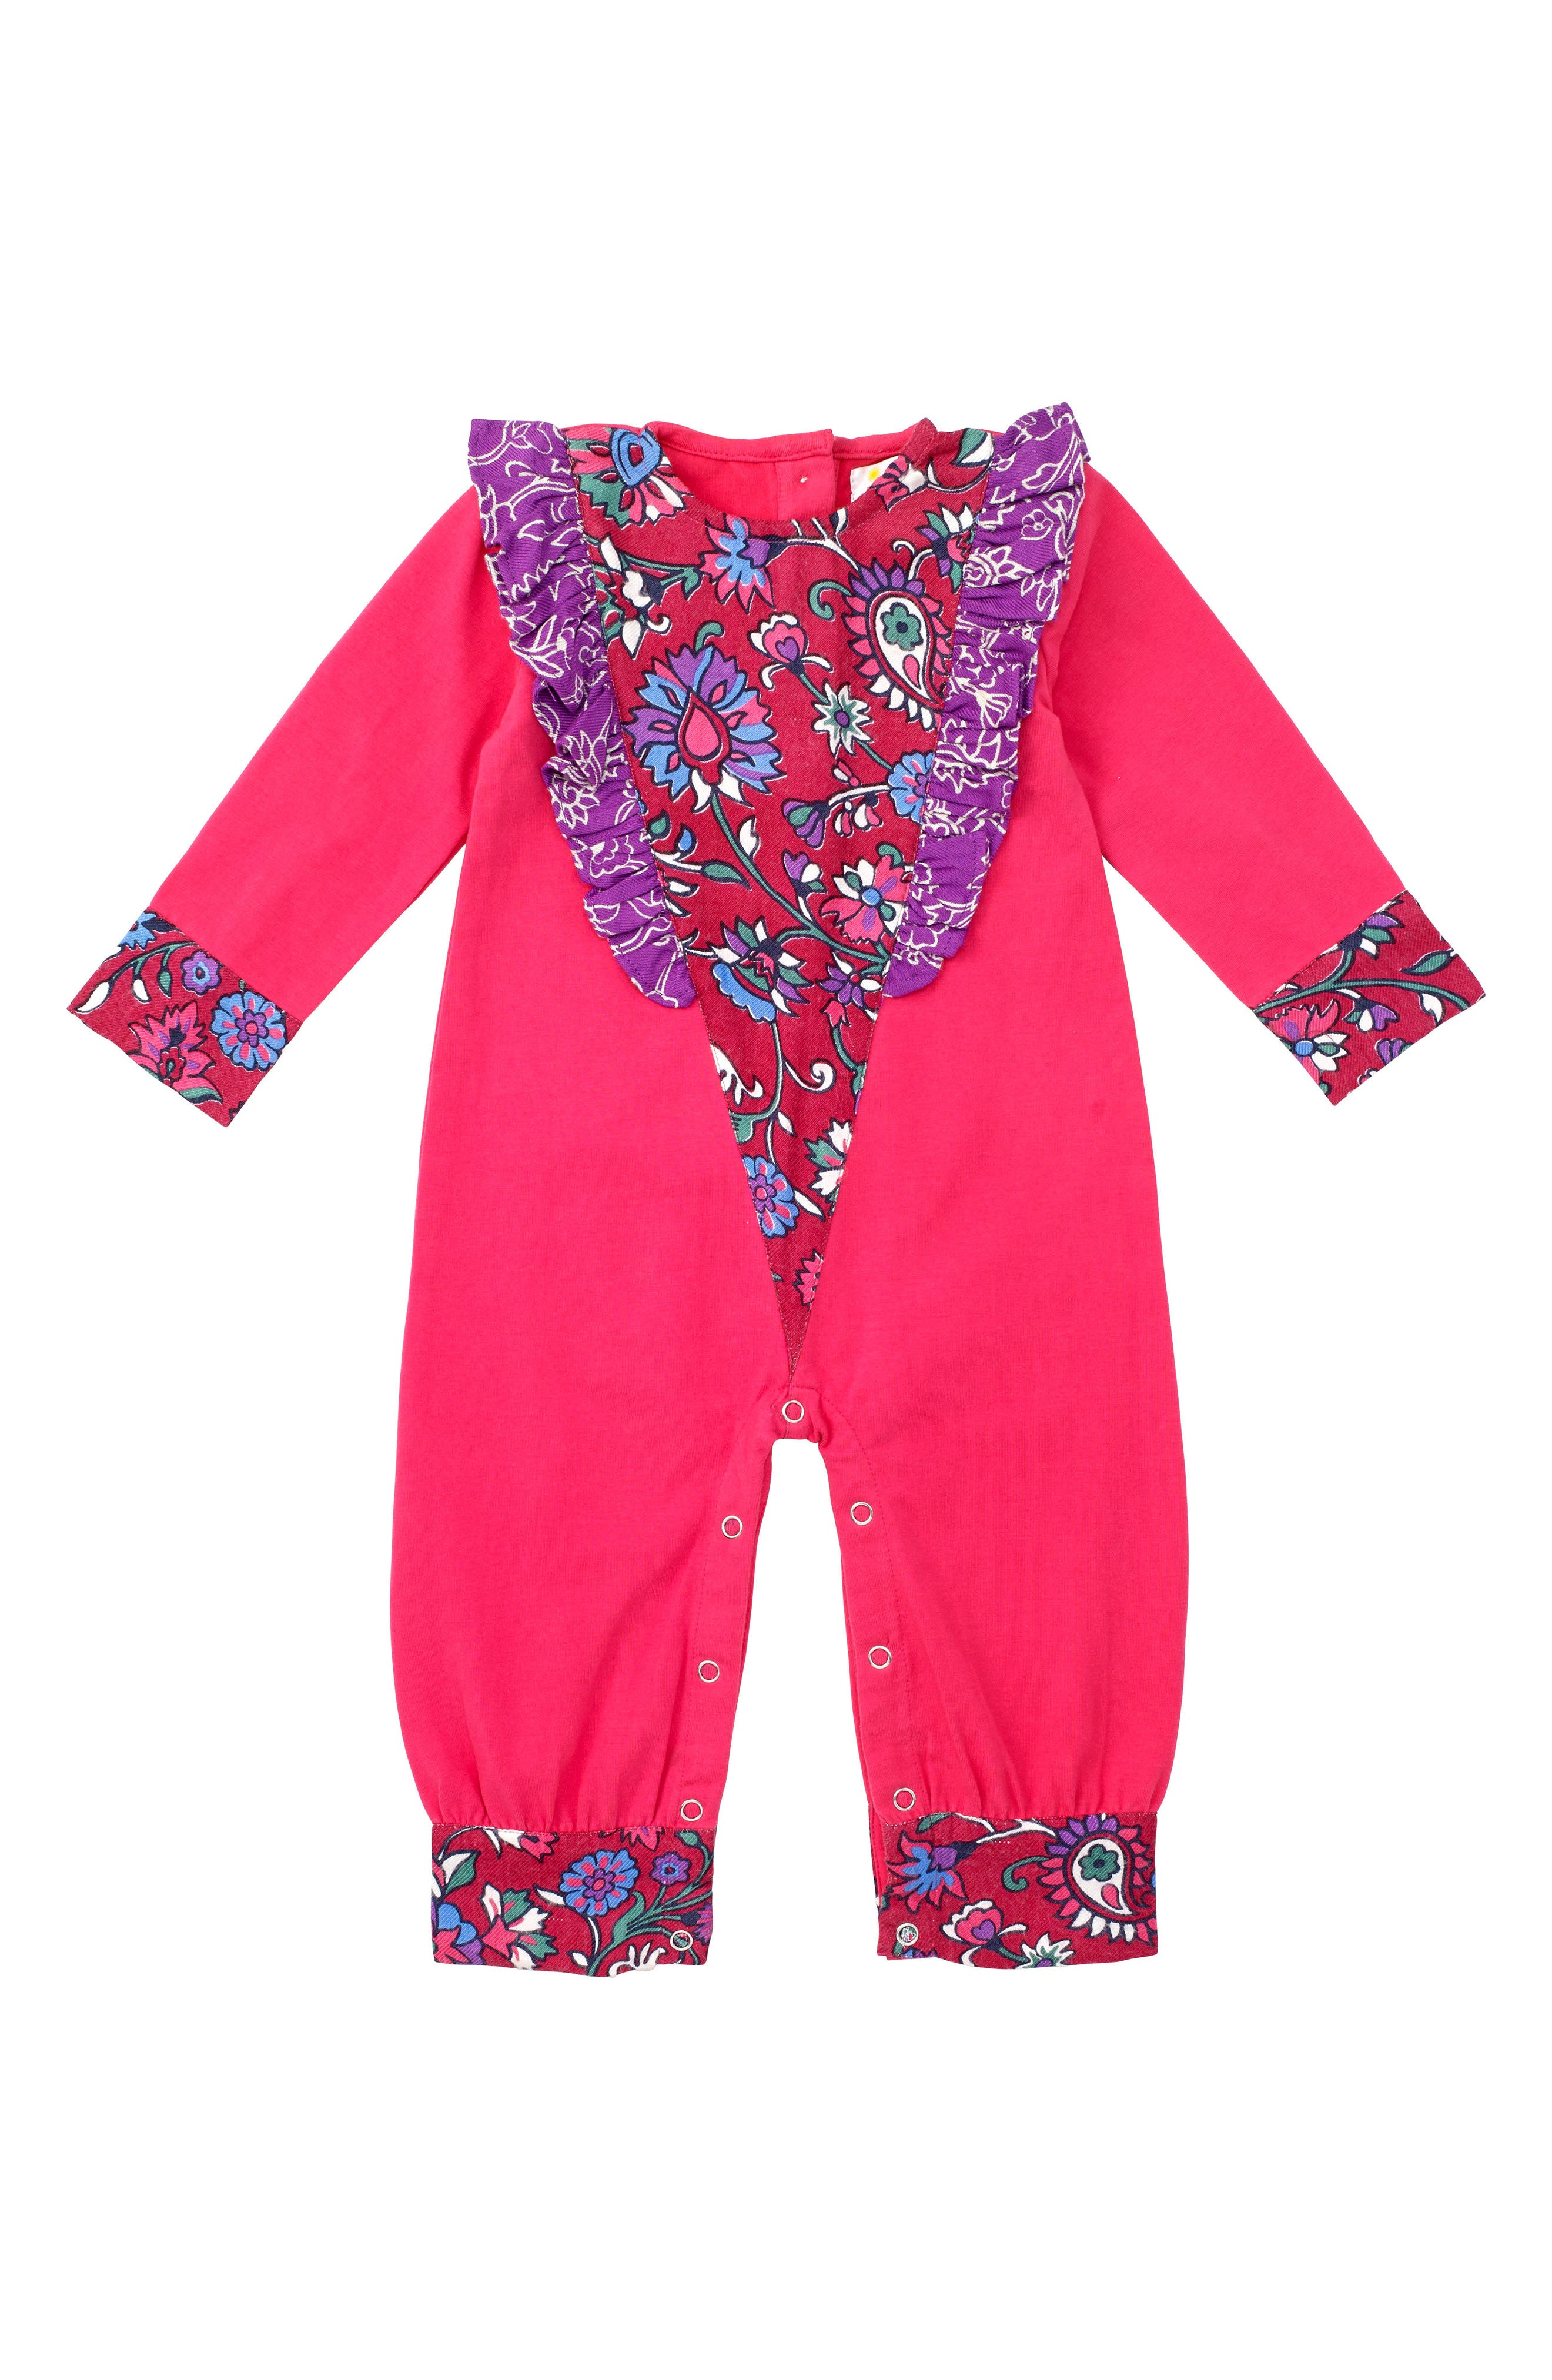 Alternate Image 1 Selected - Masalababy Fantasia Romper (Baby Girls)